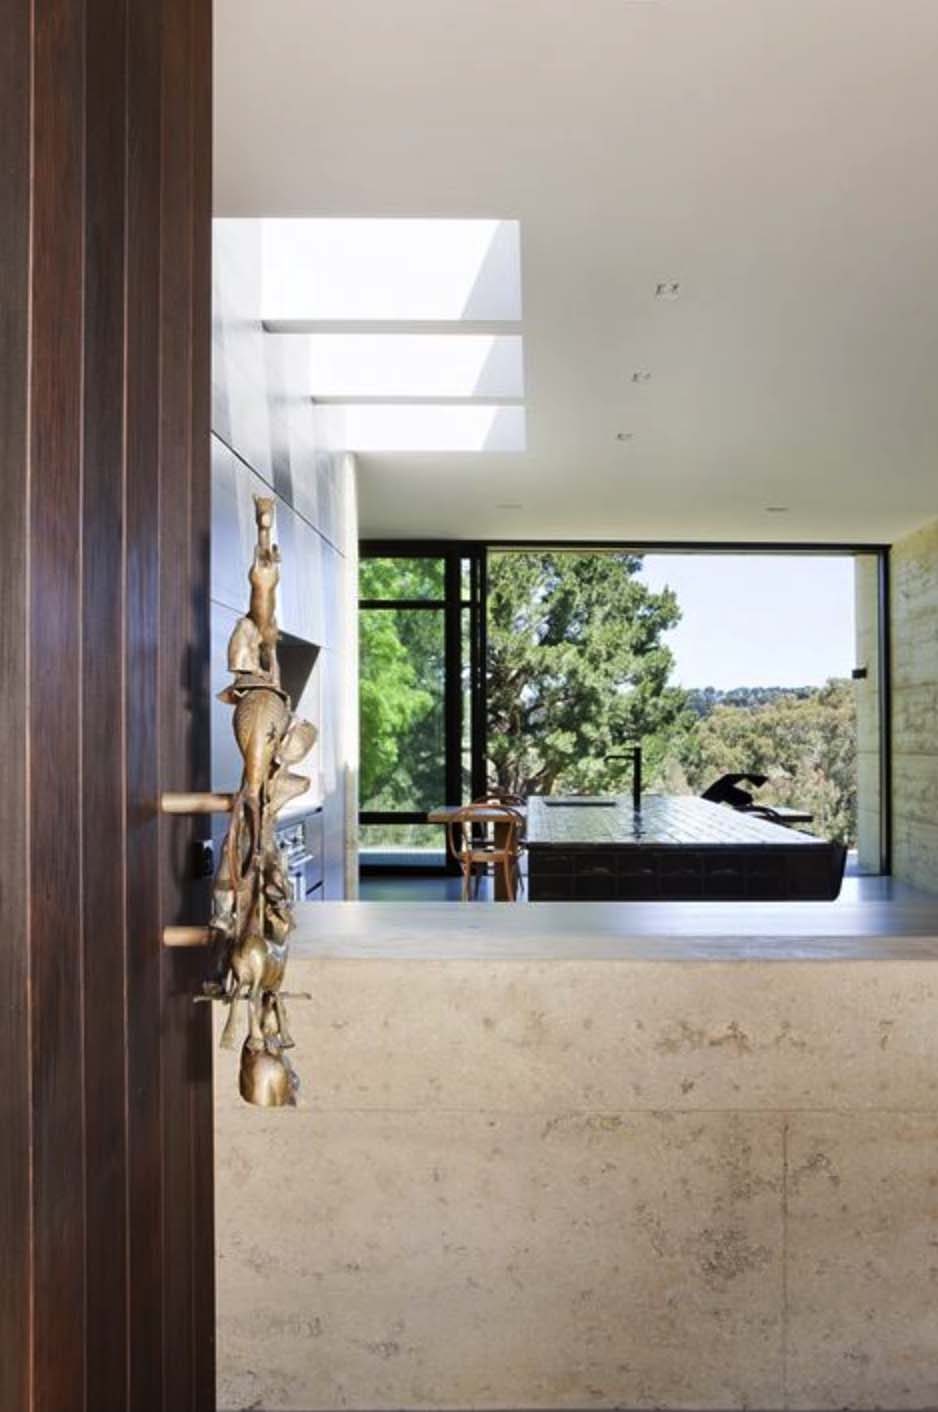 Rammed Earth House-Robson Rak Architects-19-1 Kindesign